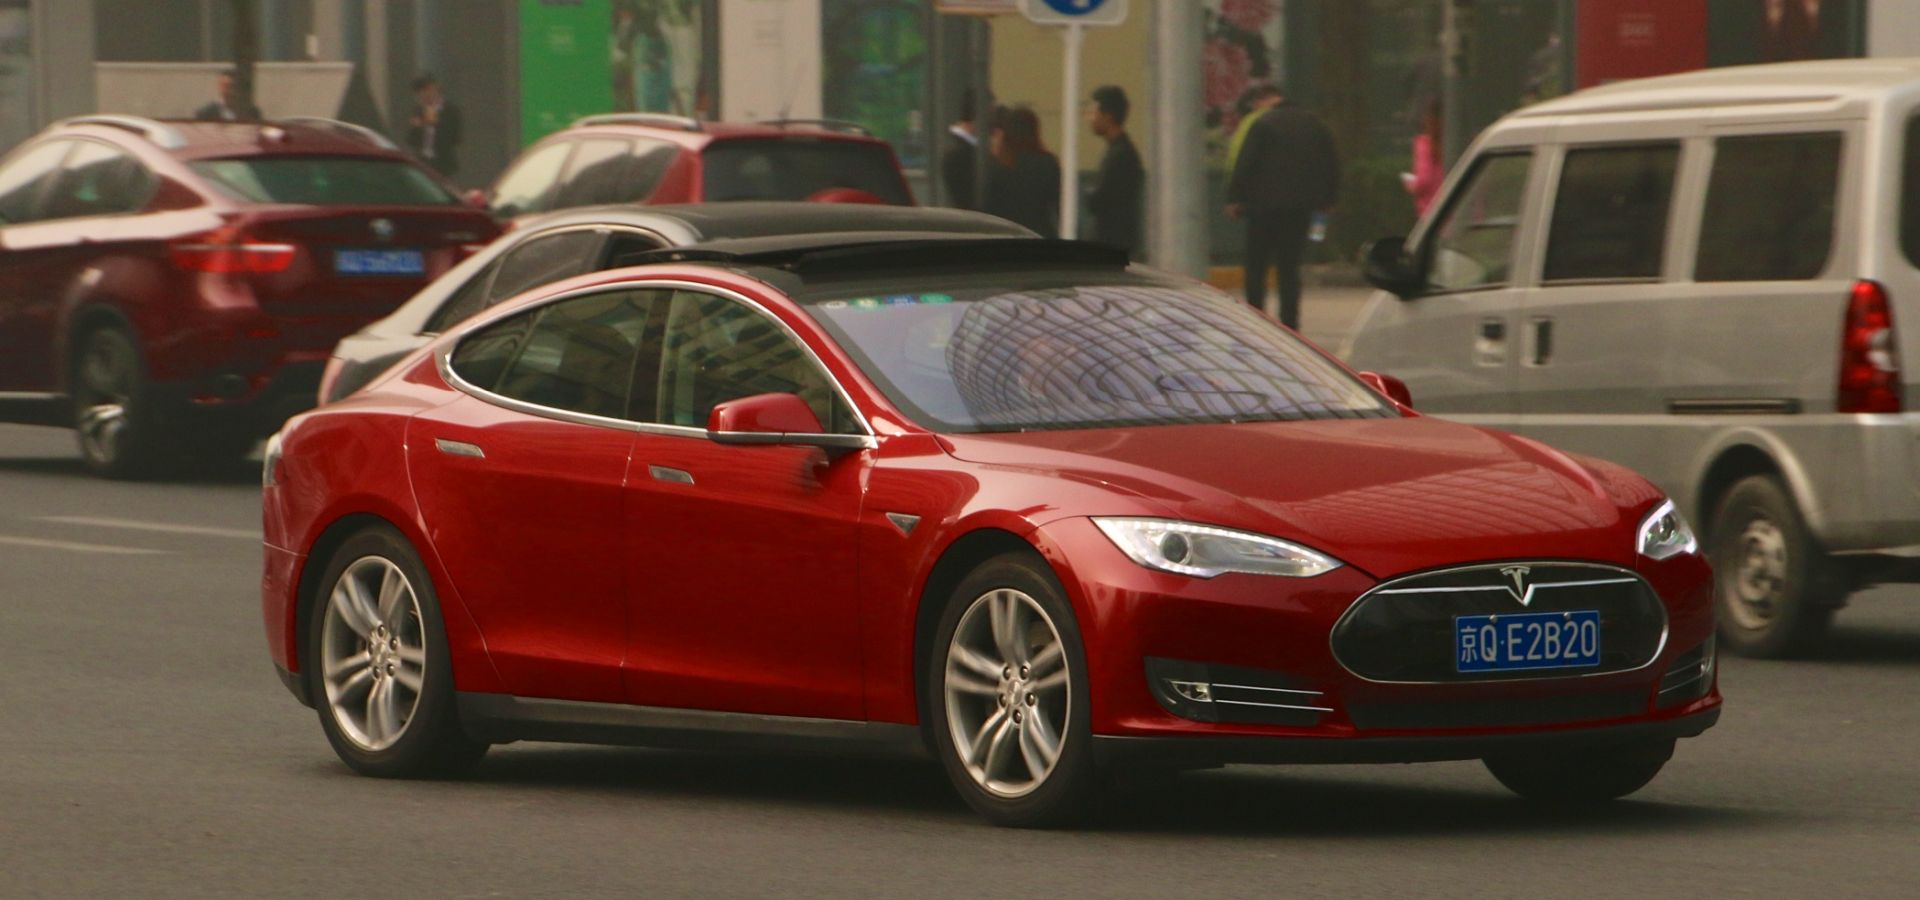 Red Tesla model S in Beijing